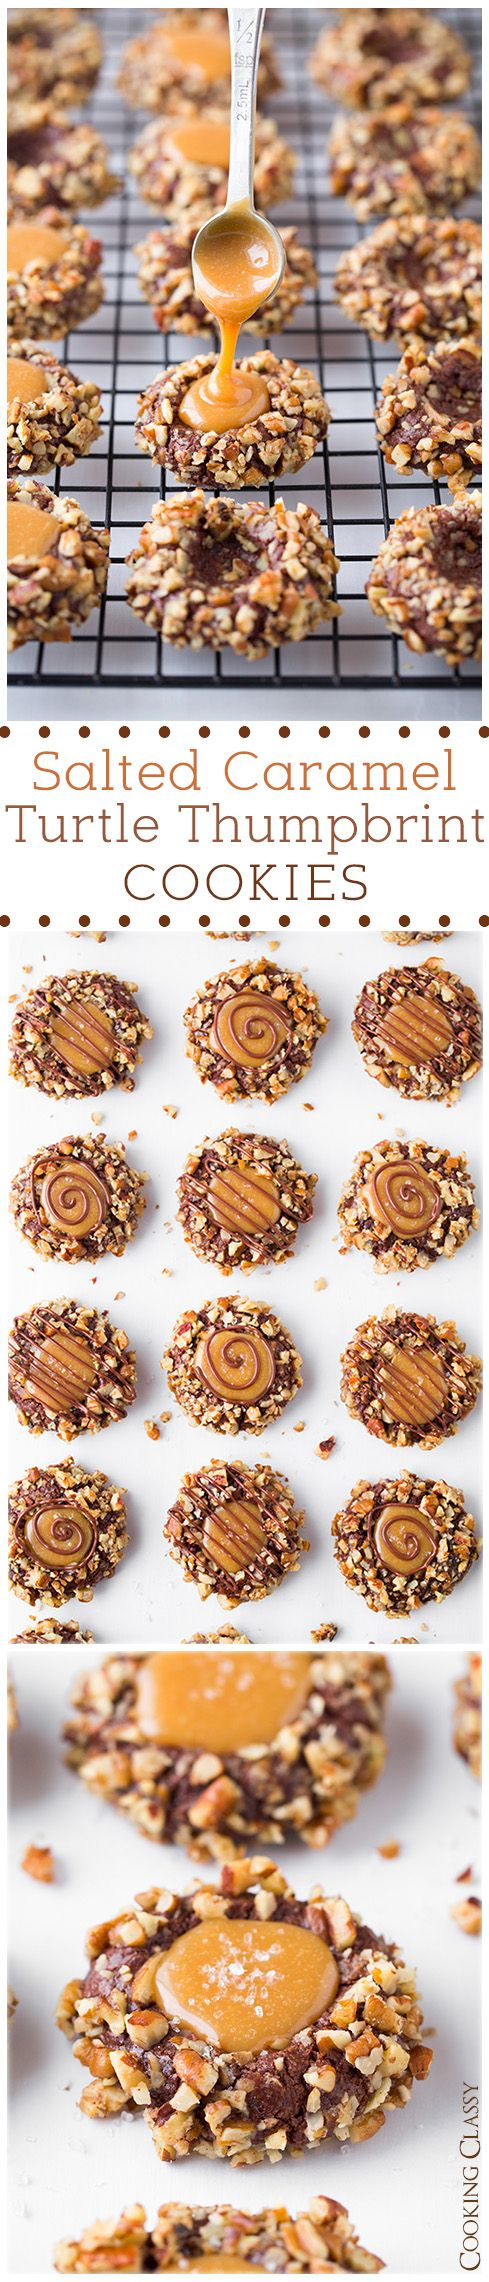 234 best sweet images on pinterest polish food desserts and 234 best sweet images on pinterest polish food desserts and polish recipes forumfinder Image collections